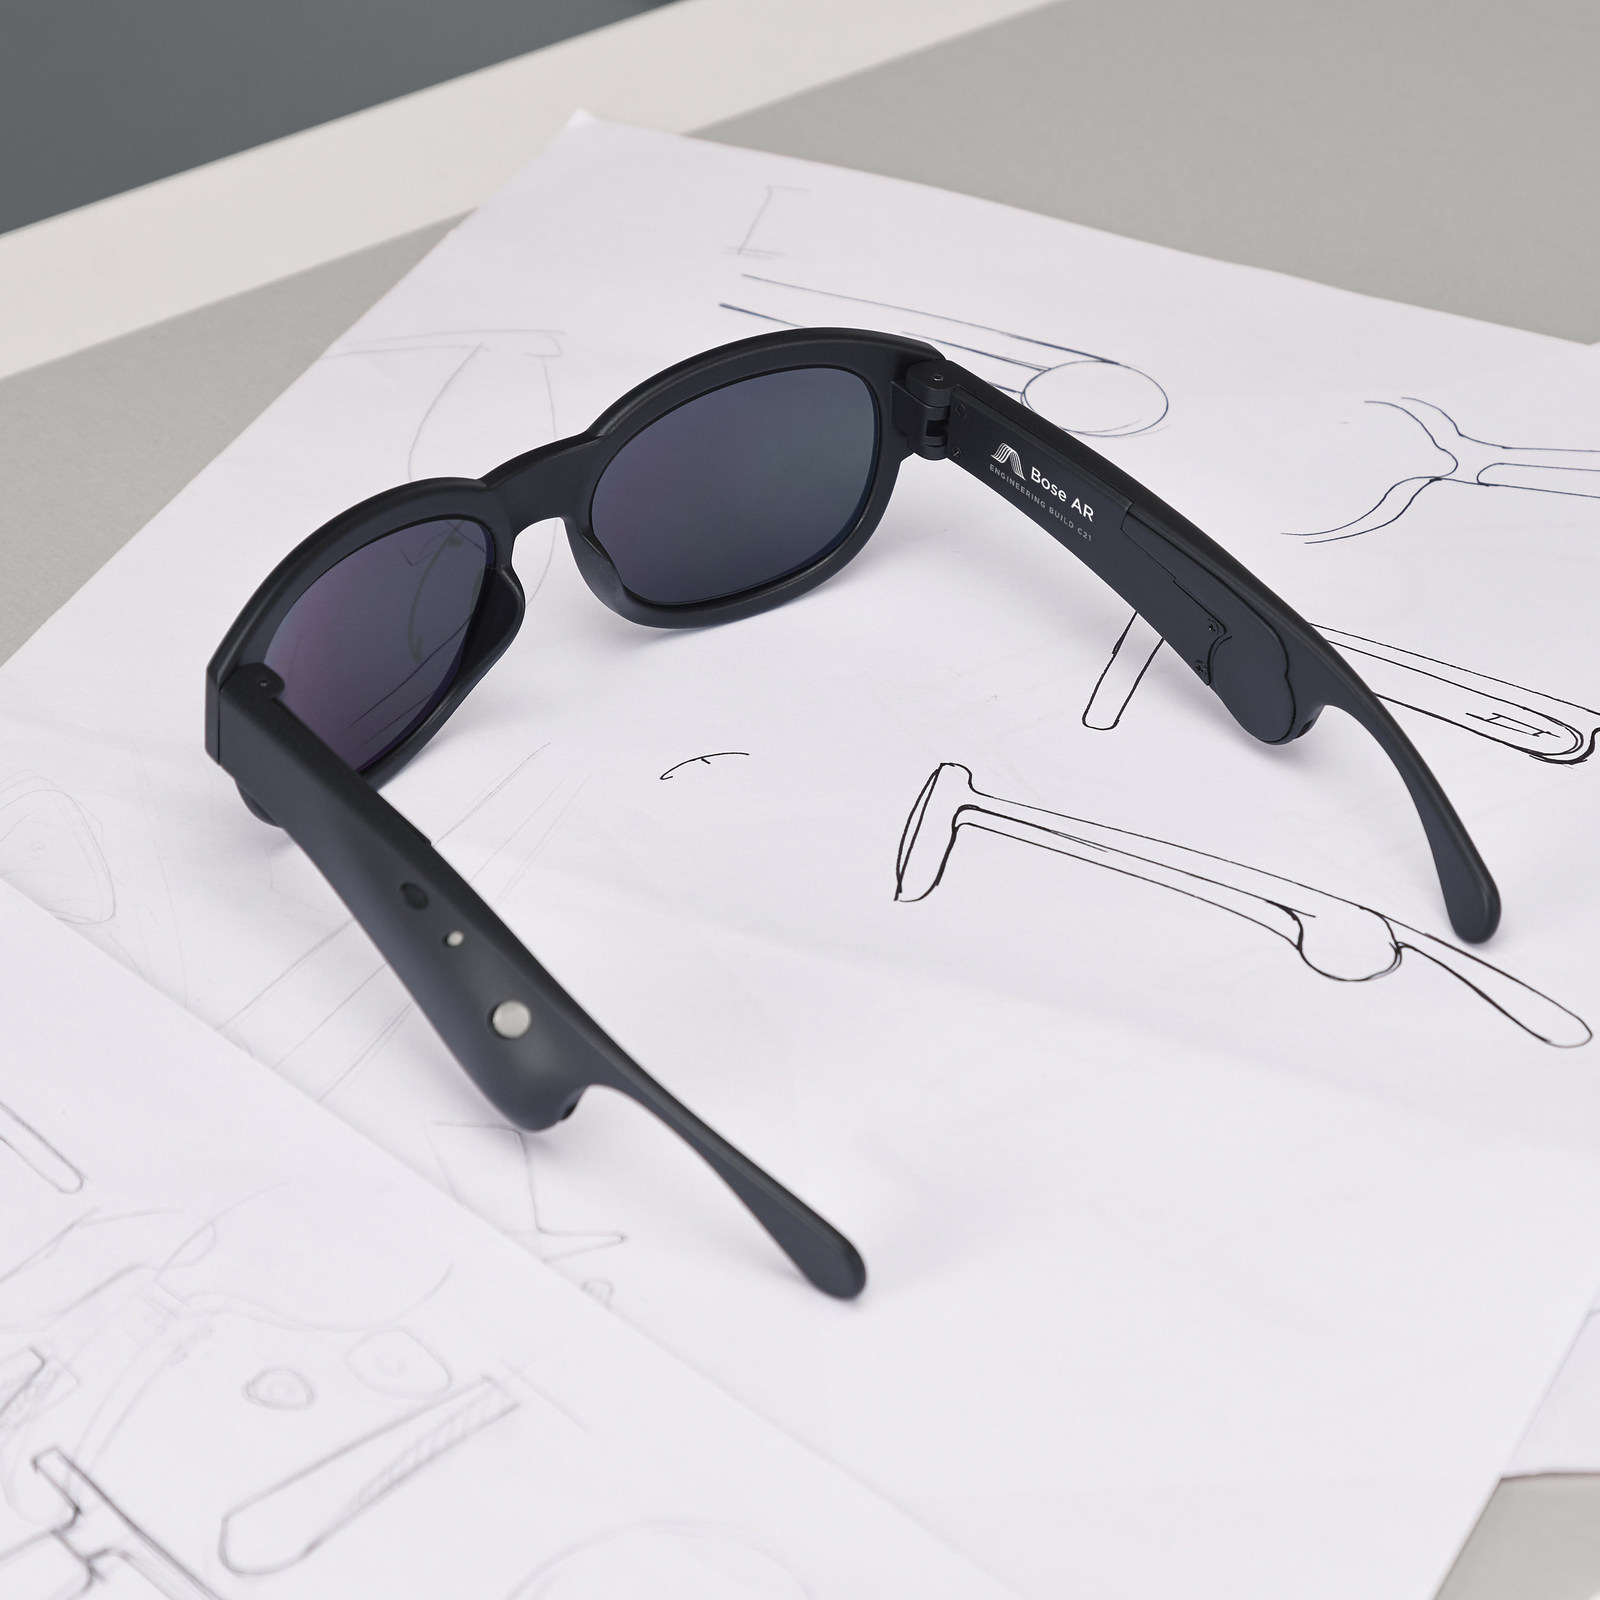 Bose AR Glasses Announced - Augmented Reality Audio in Sunglasses